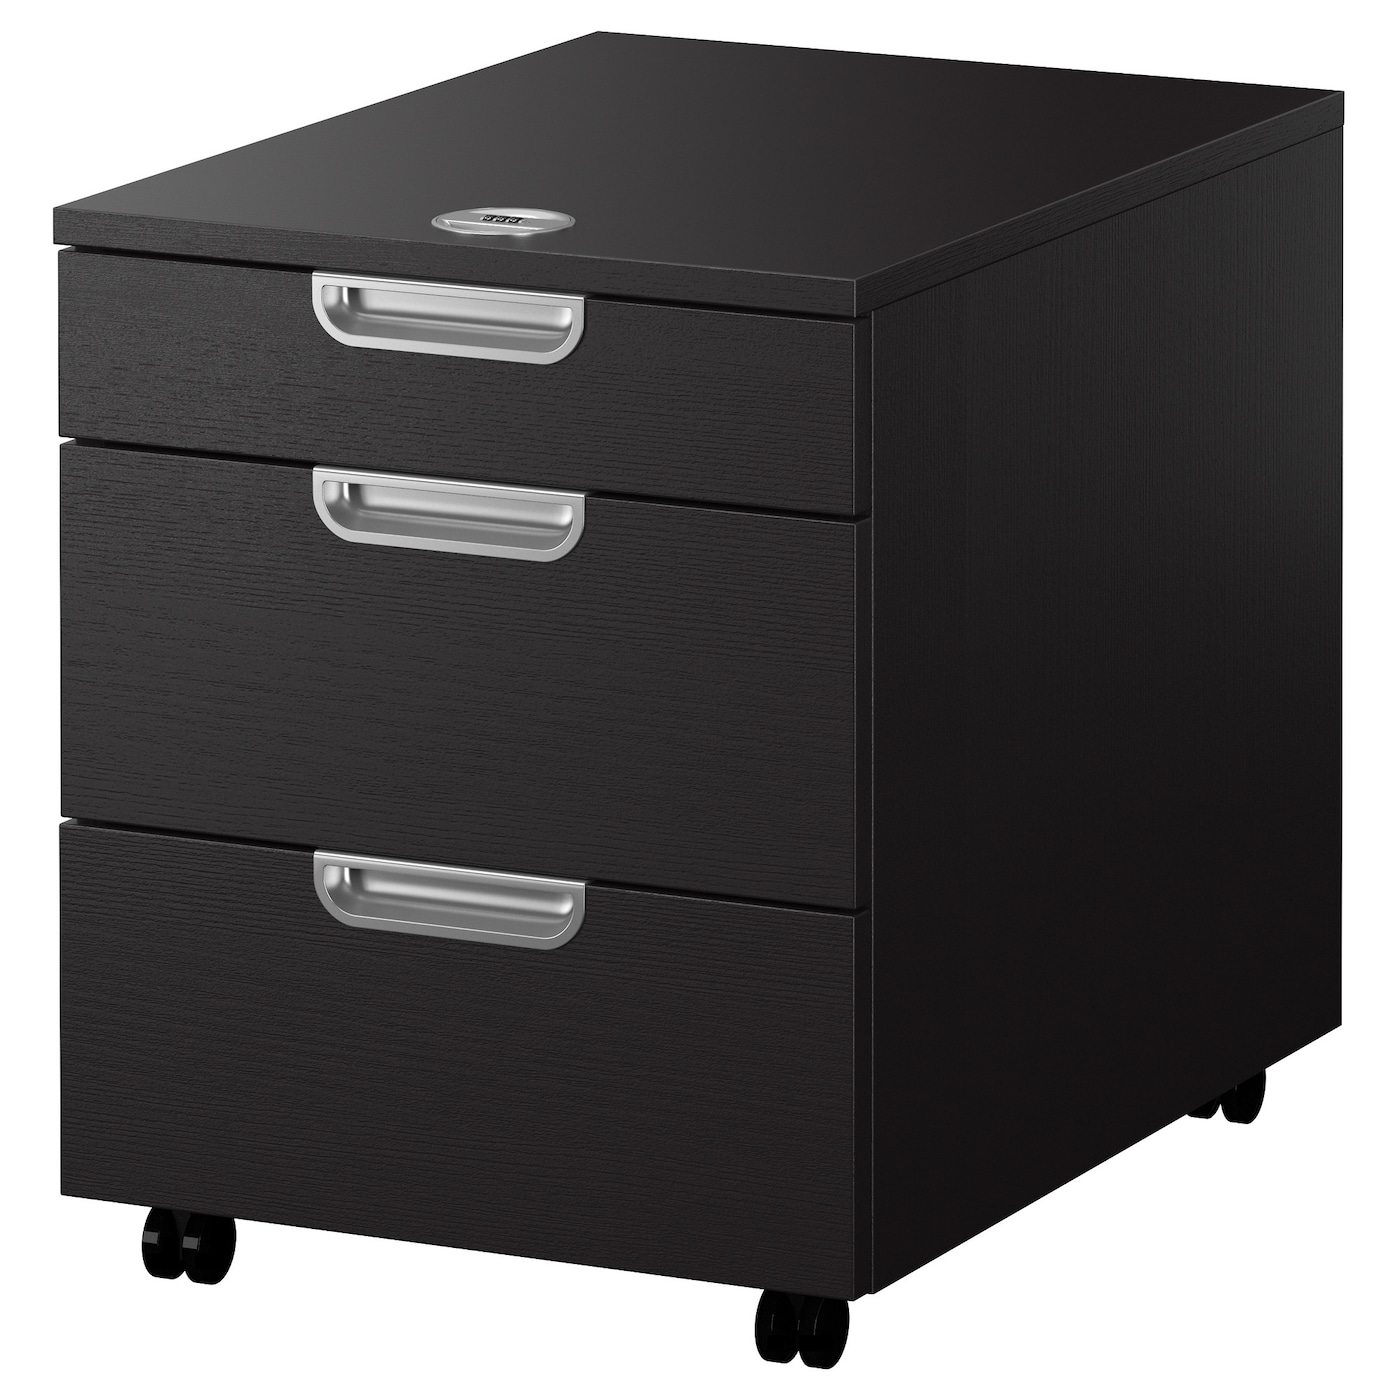 galant drawer unit on castors black brown 45x55 cm ikea. Black Bedroom Furniture Sets. Home Design Ideas